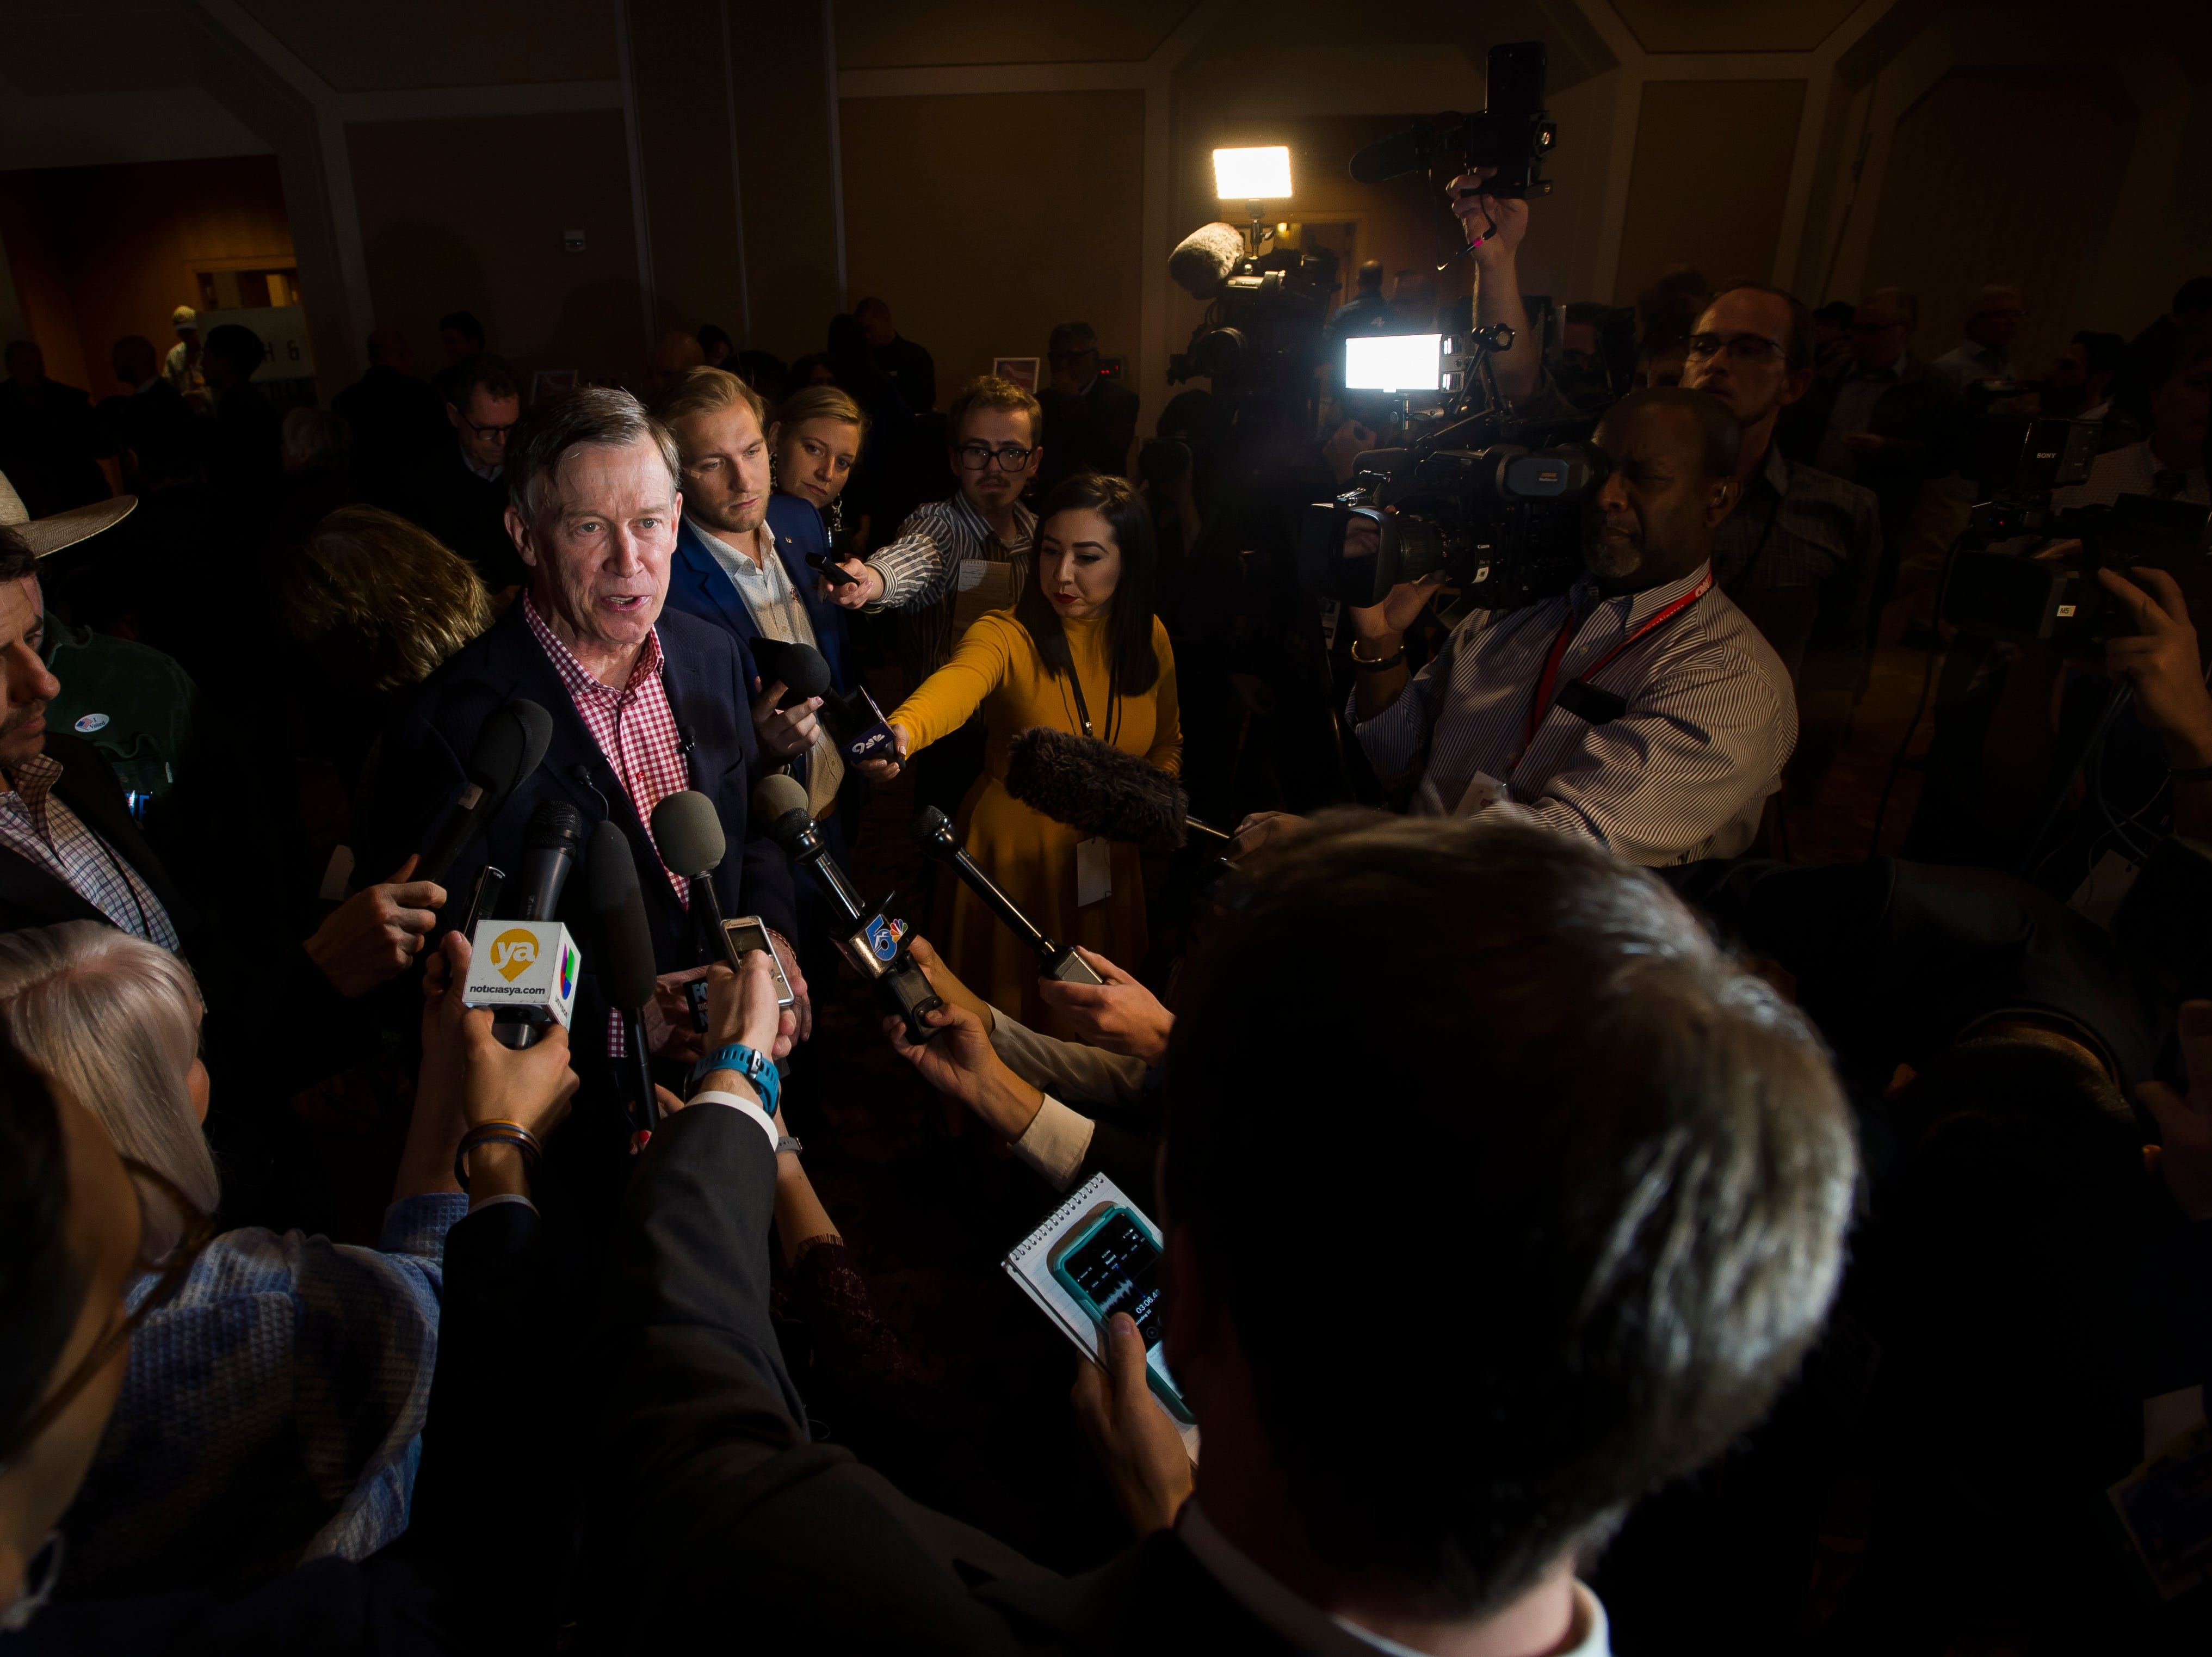 Colorado Governor John Hickenlooper speaks to members of the media before an election watch party for Democratic candidate for Colorado governor Jared Polis on Tuesday, Nov. 6, 2018, at the Westin Denver Downtown hotel in Denver, Colo.